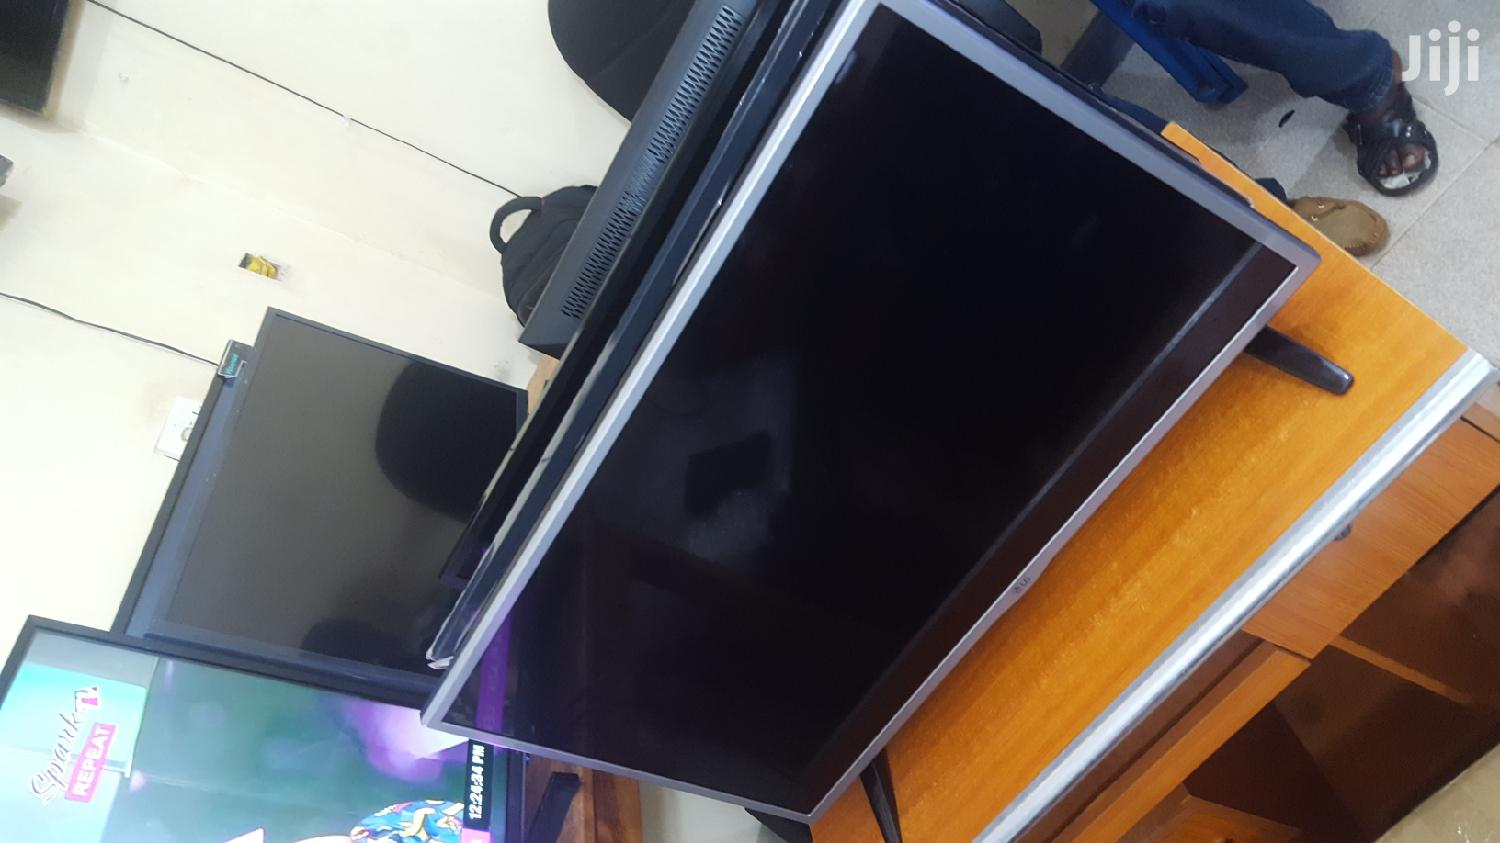 Archive: LG LED Digital Satellite TV 32 Inches